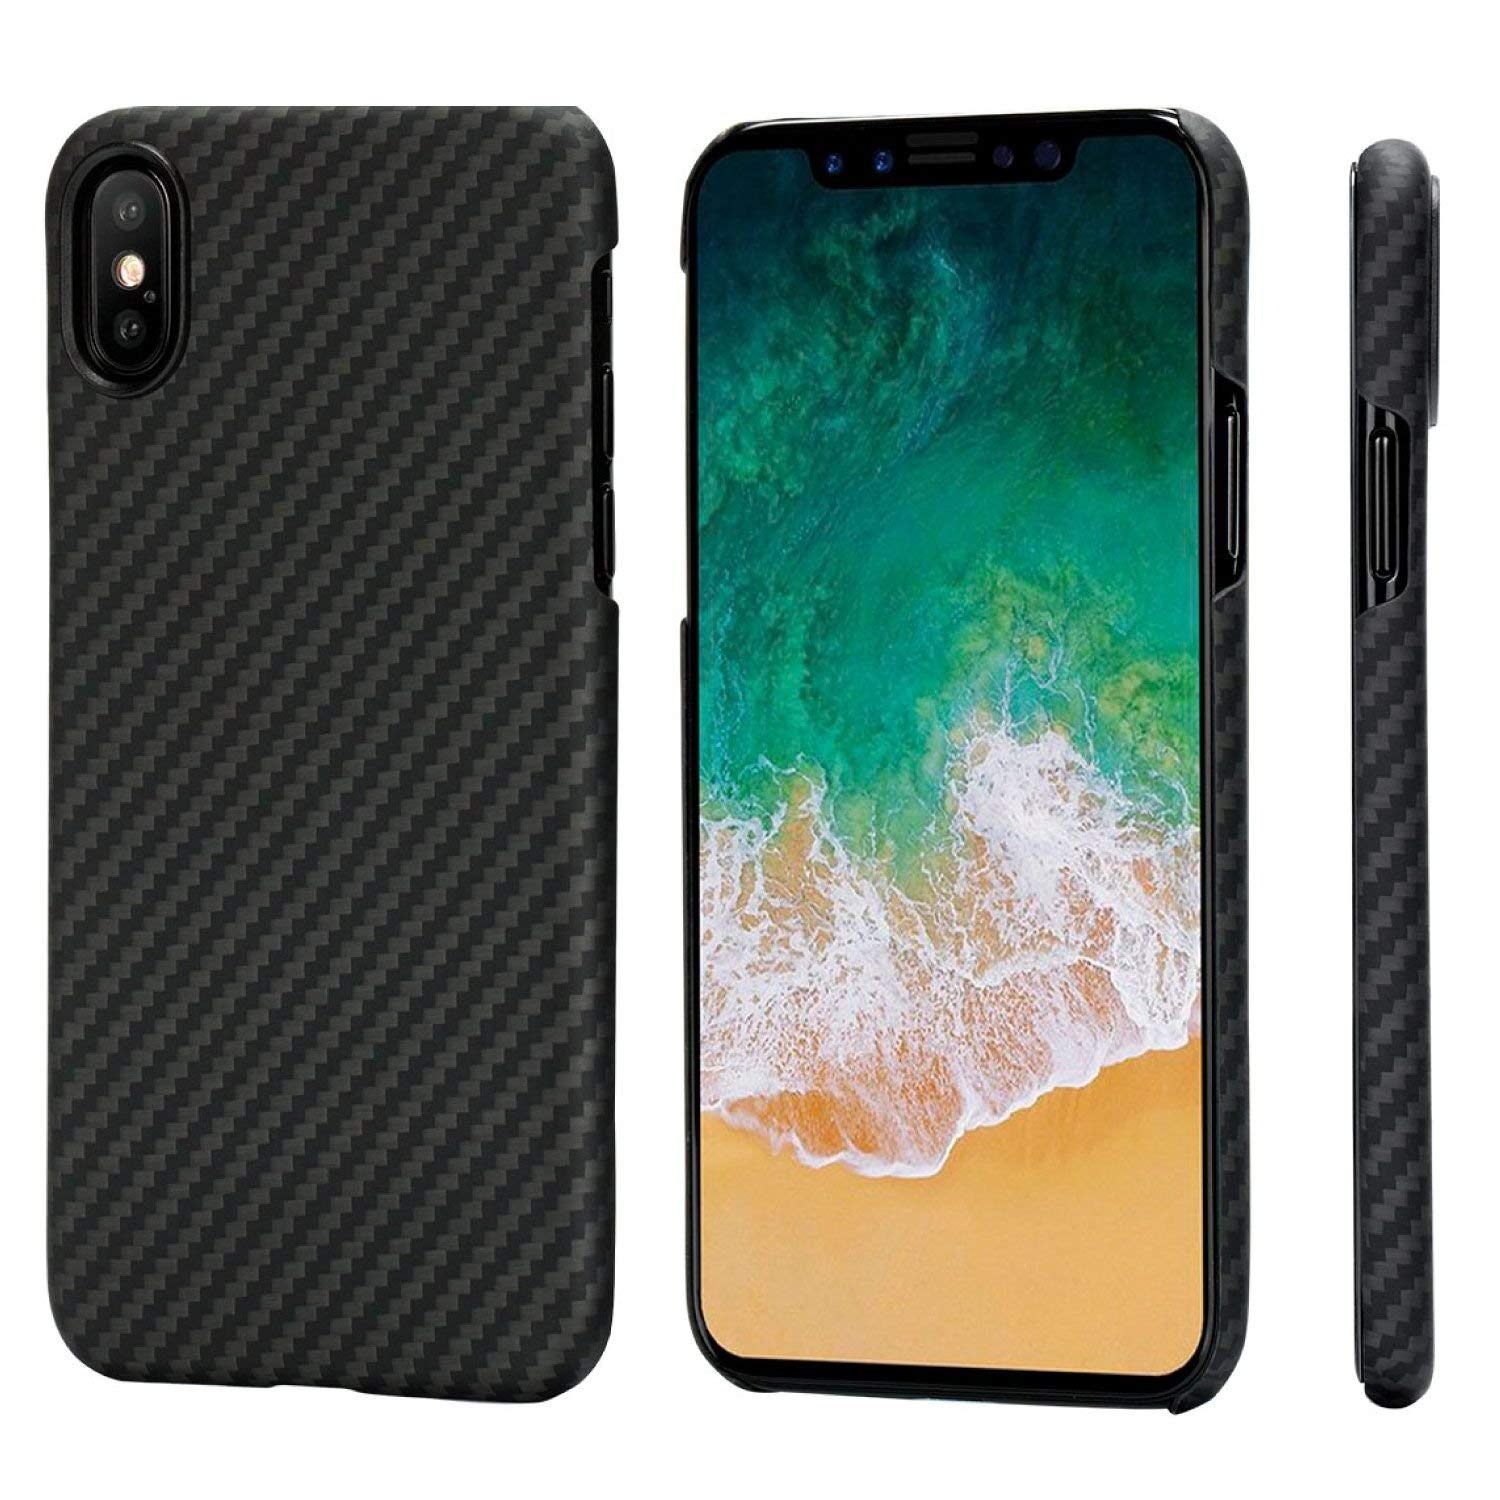 Pikata phone case iPhone XS